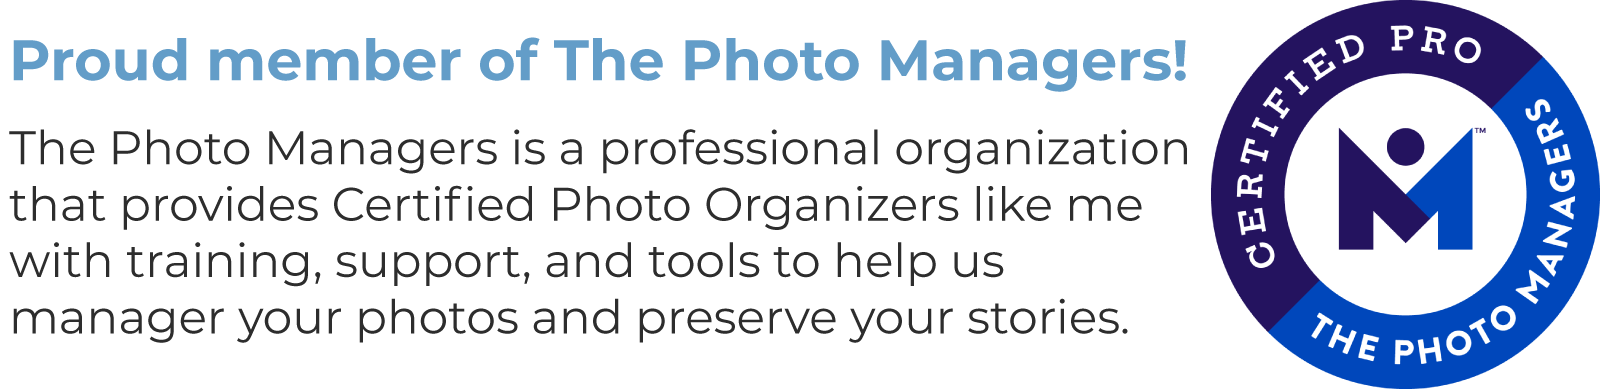 the photo managers